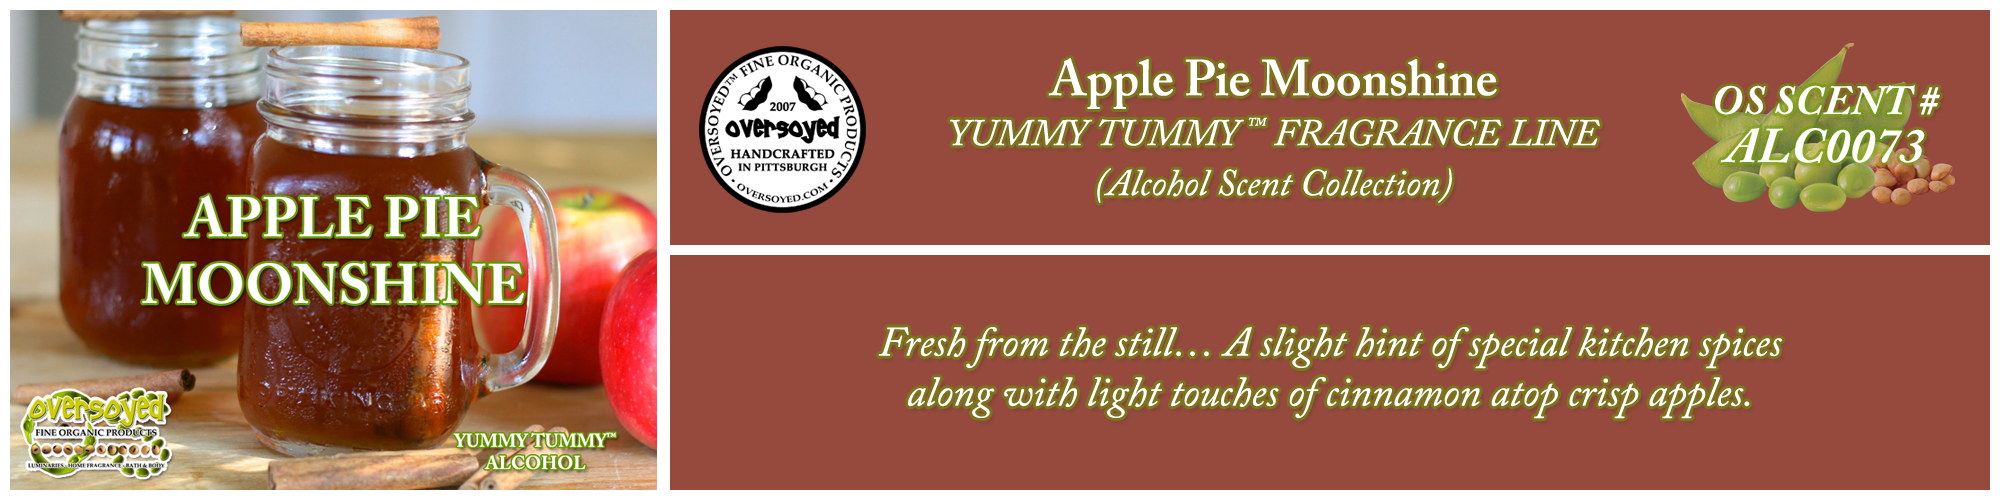 Apple Pie Moonshine Handcrafted Products Collection